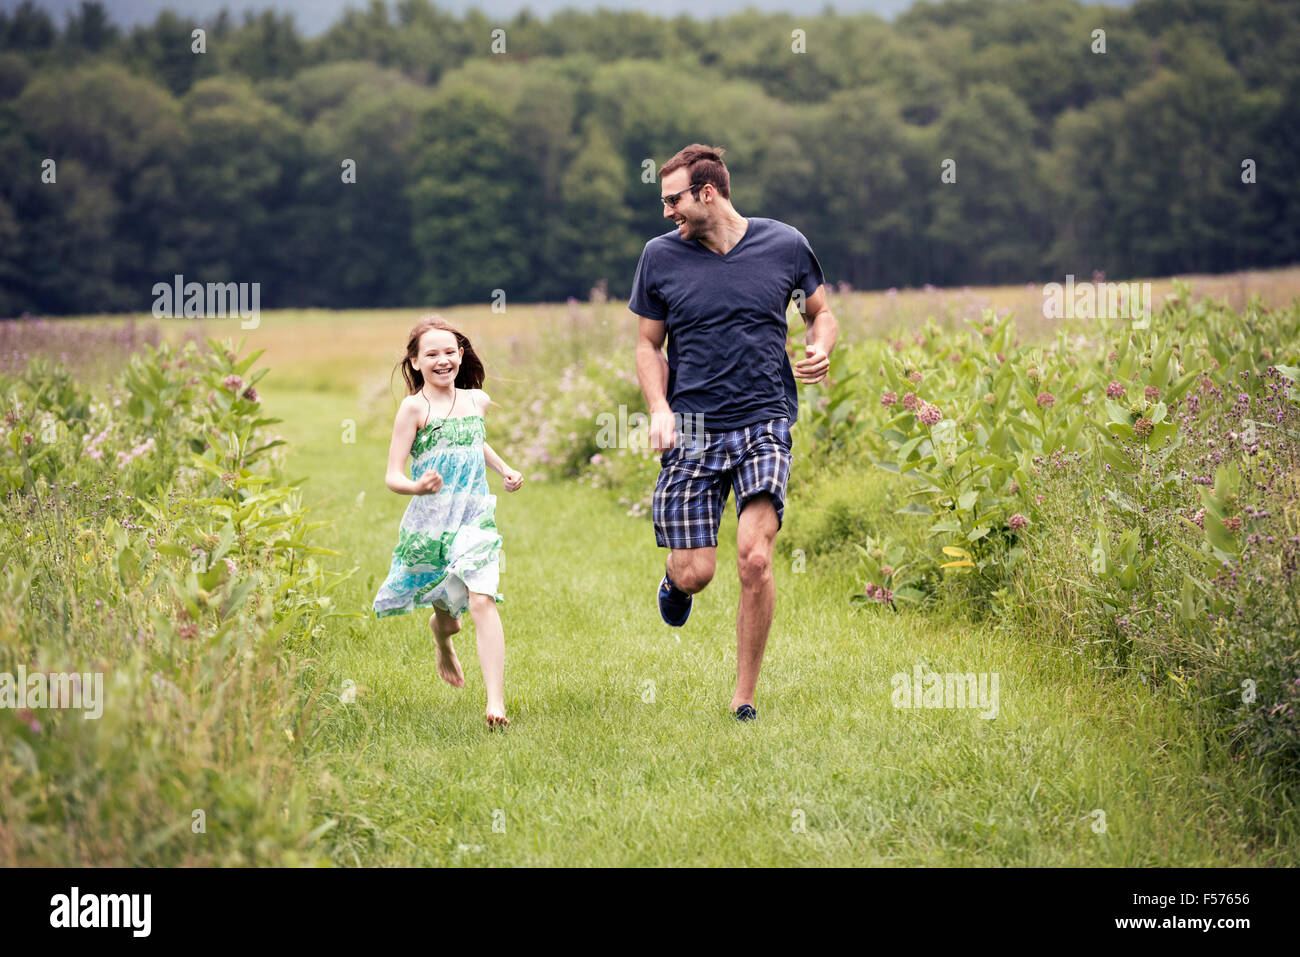 A man and a young child running through a wildflower meadow. - Stock Image